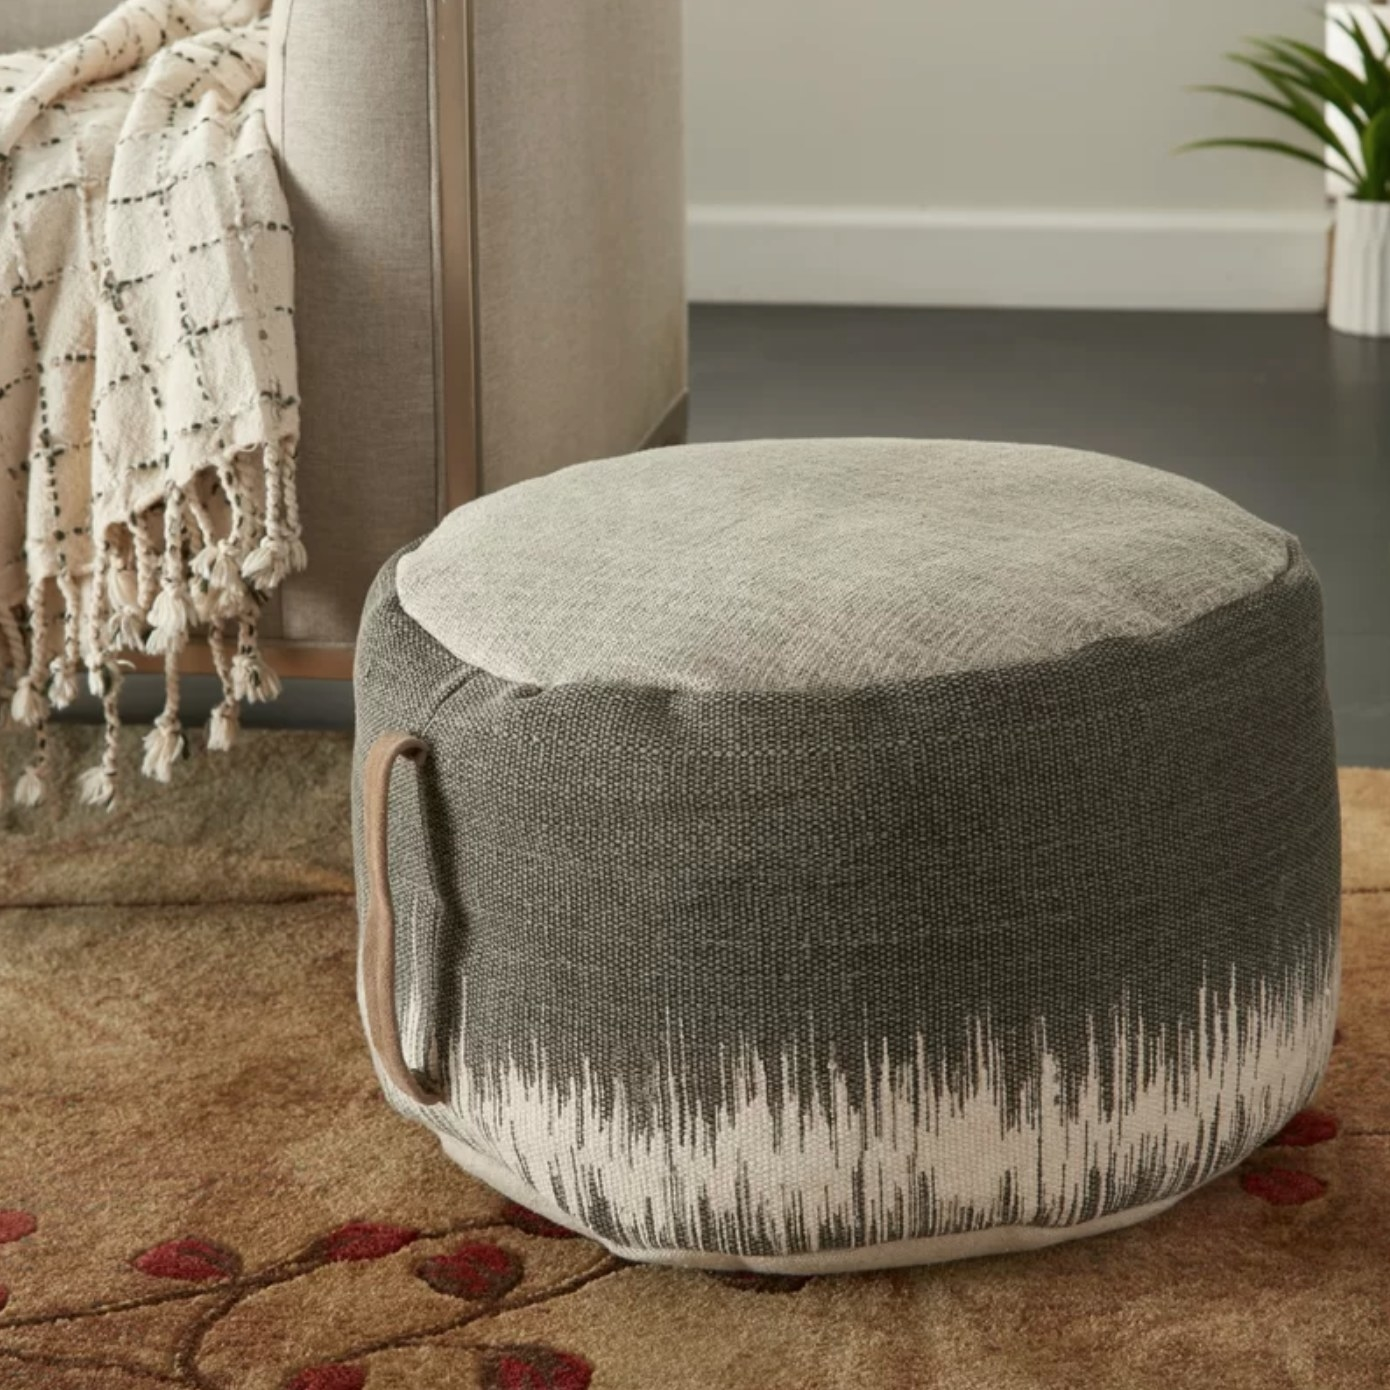 The ottoman pouf in charcoal black/ ivory